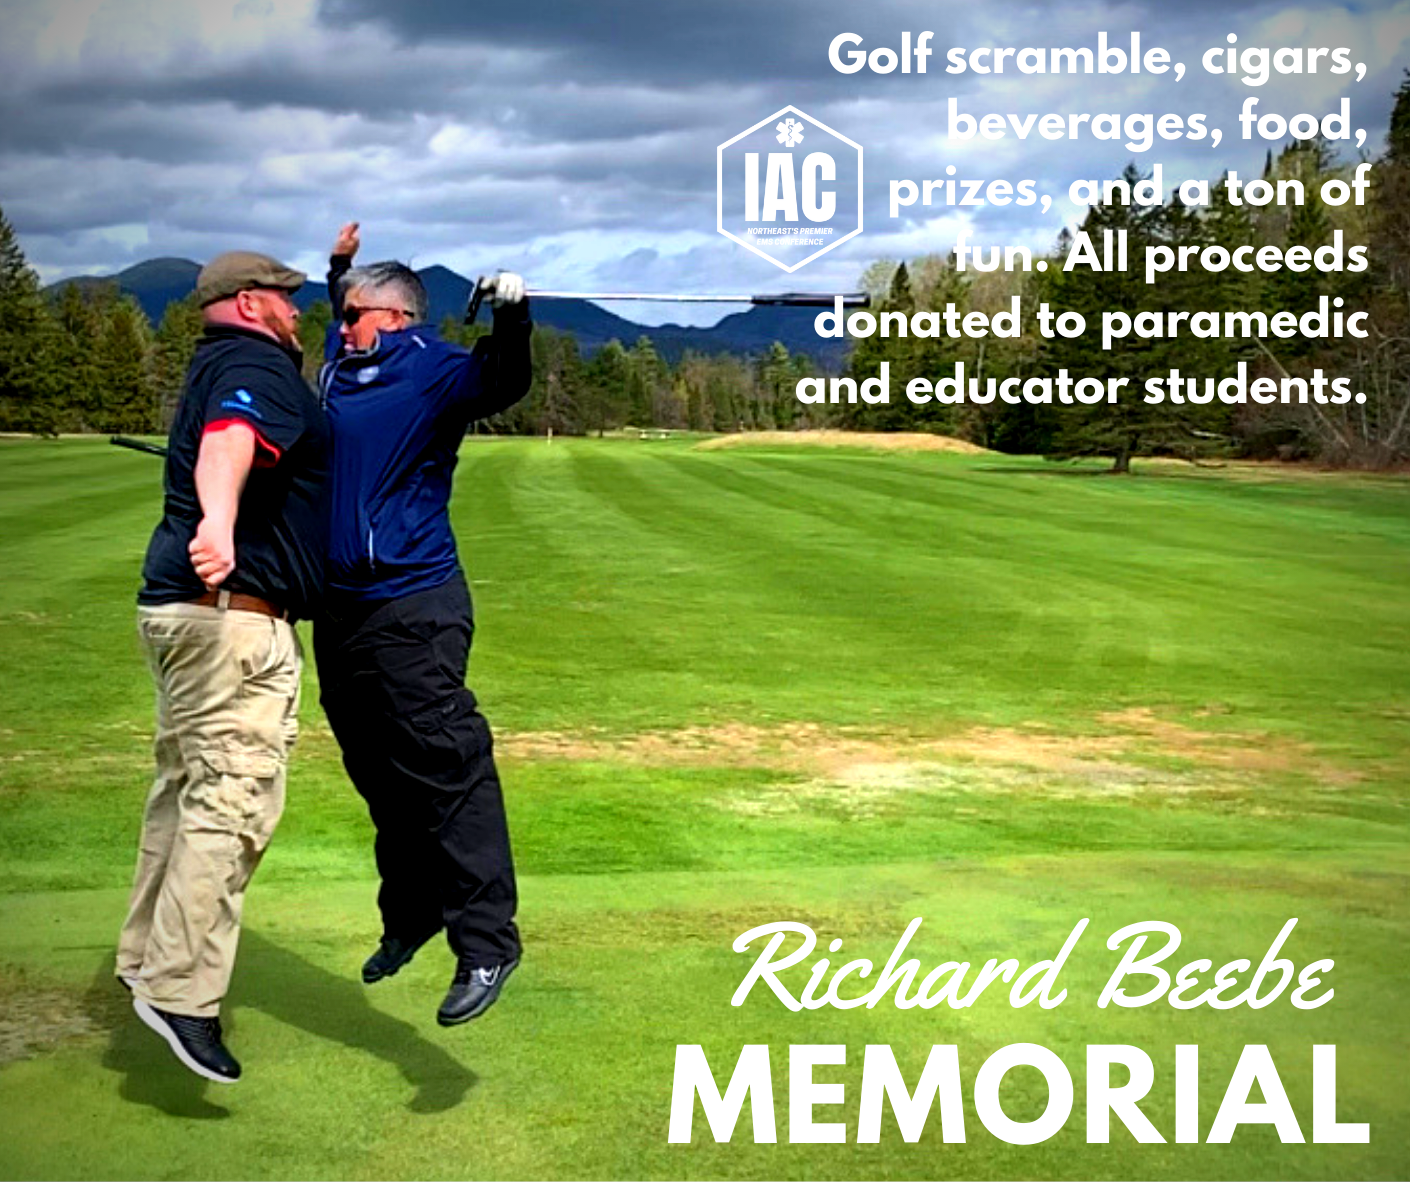 Richard Beebe Memorial Golf & Cigars